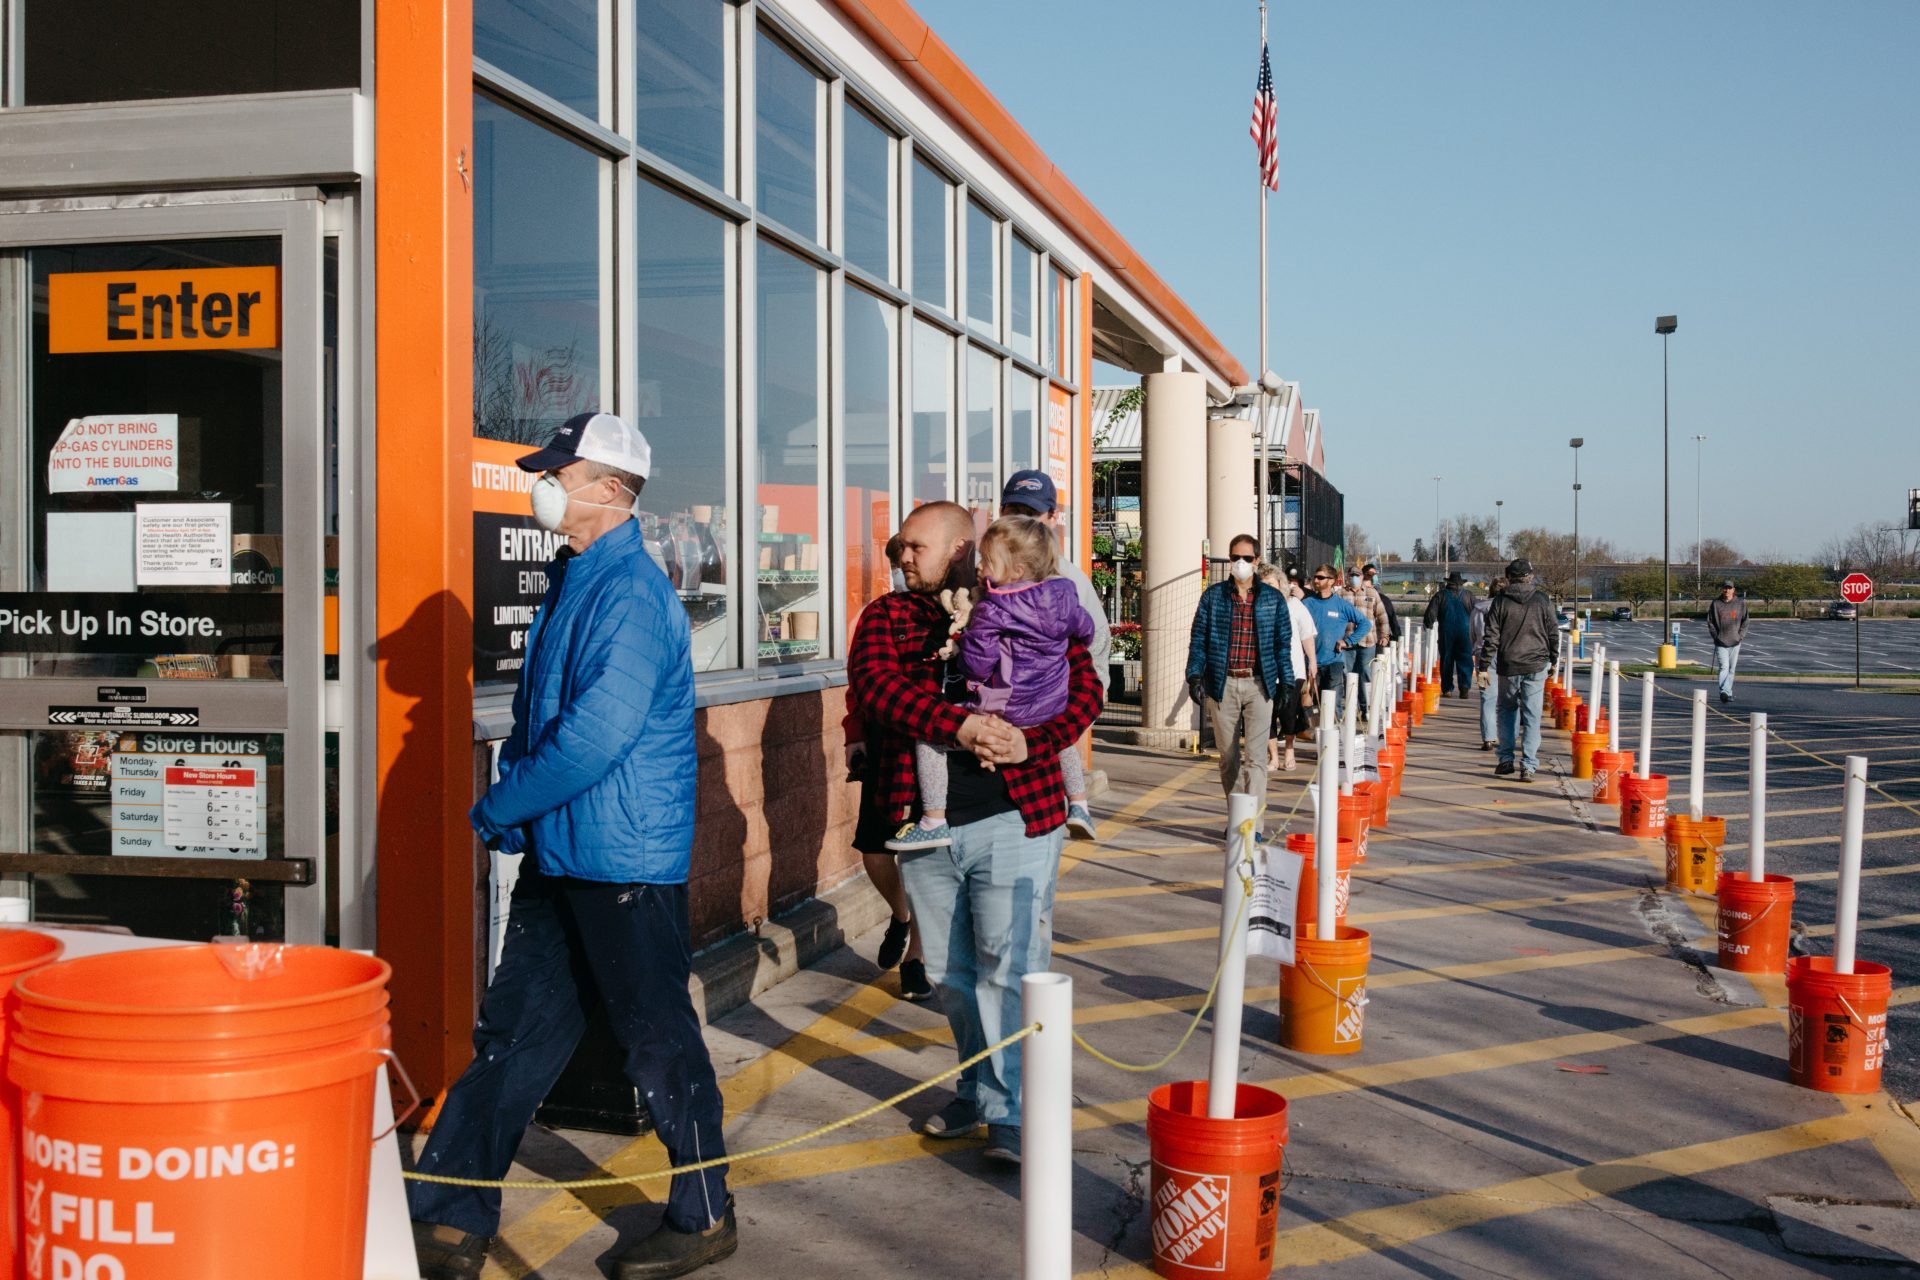 Customers line up outside a Home Depot store in Lancaster County on April 19, 2020.